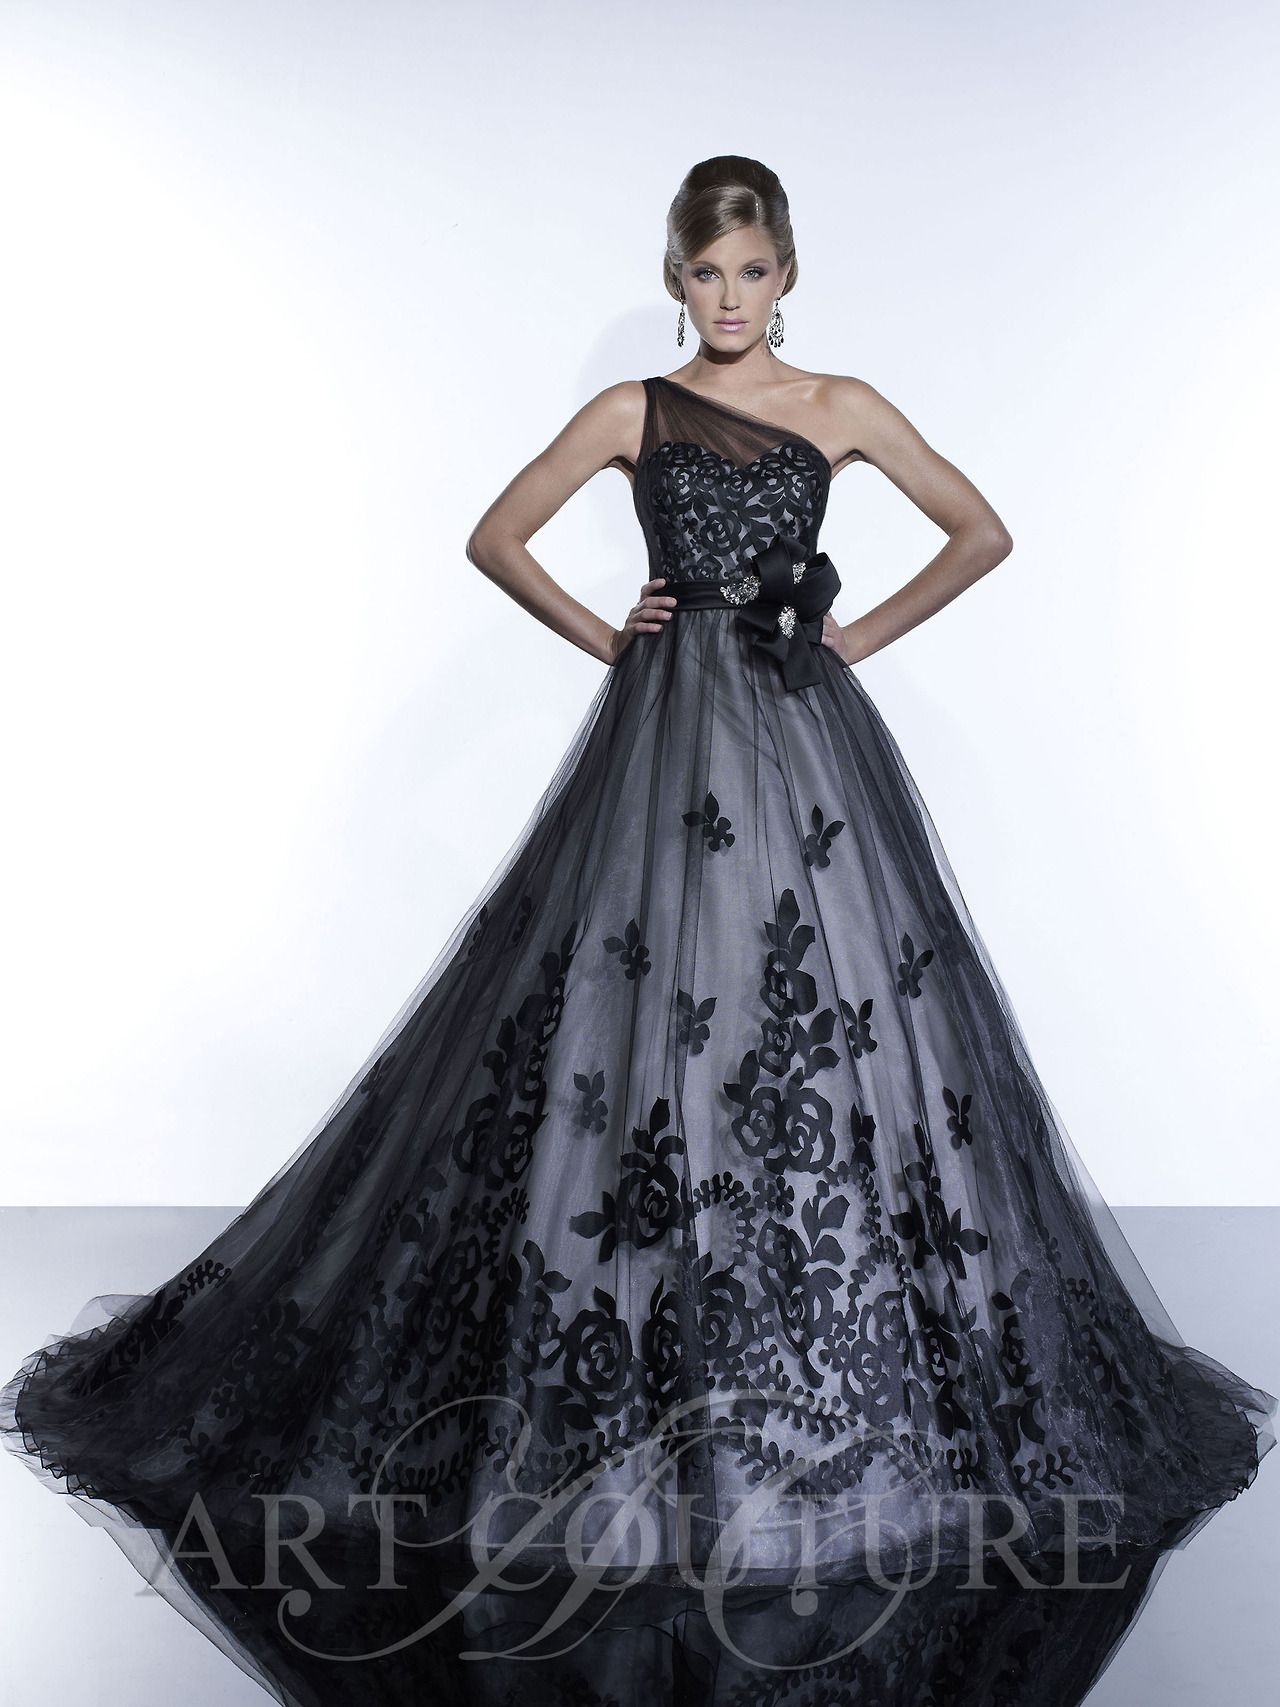 Black silver wedding dress...  f4199a597afe